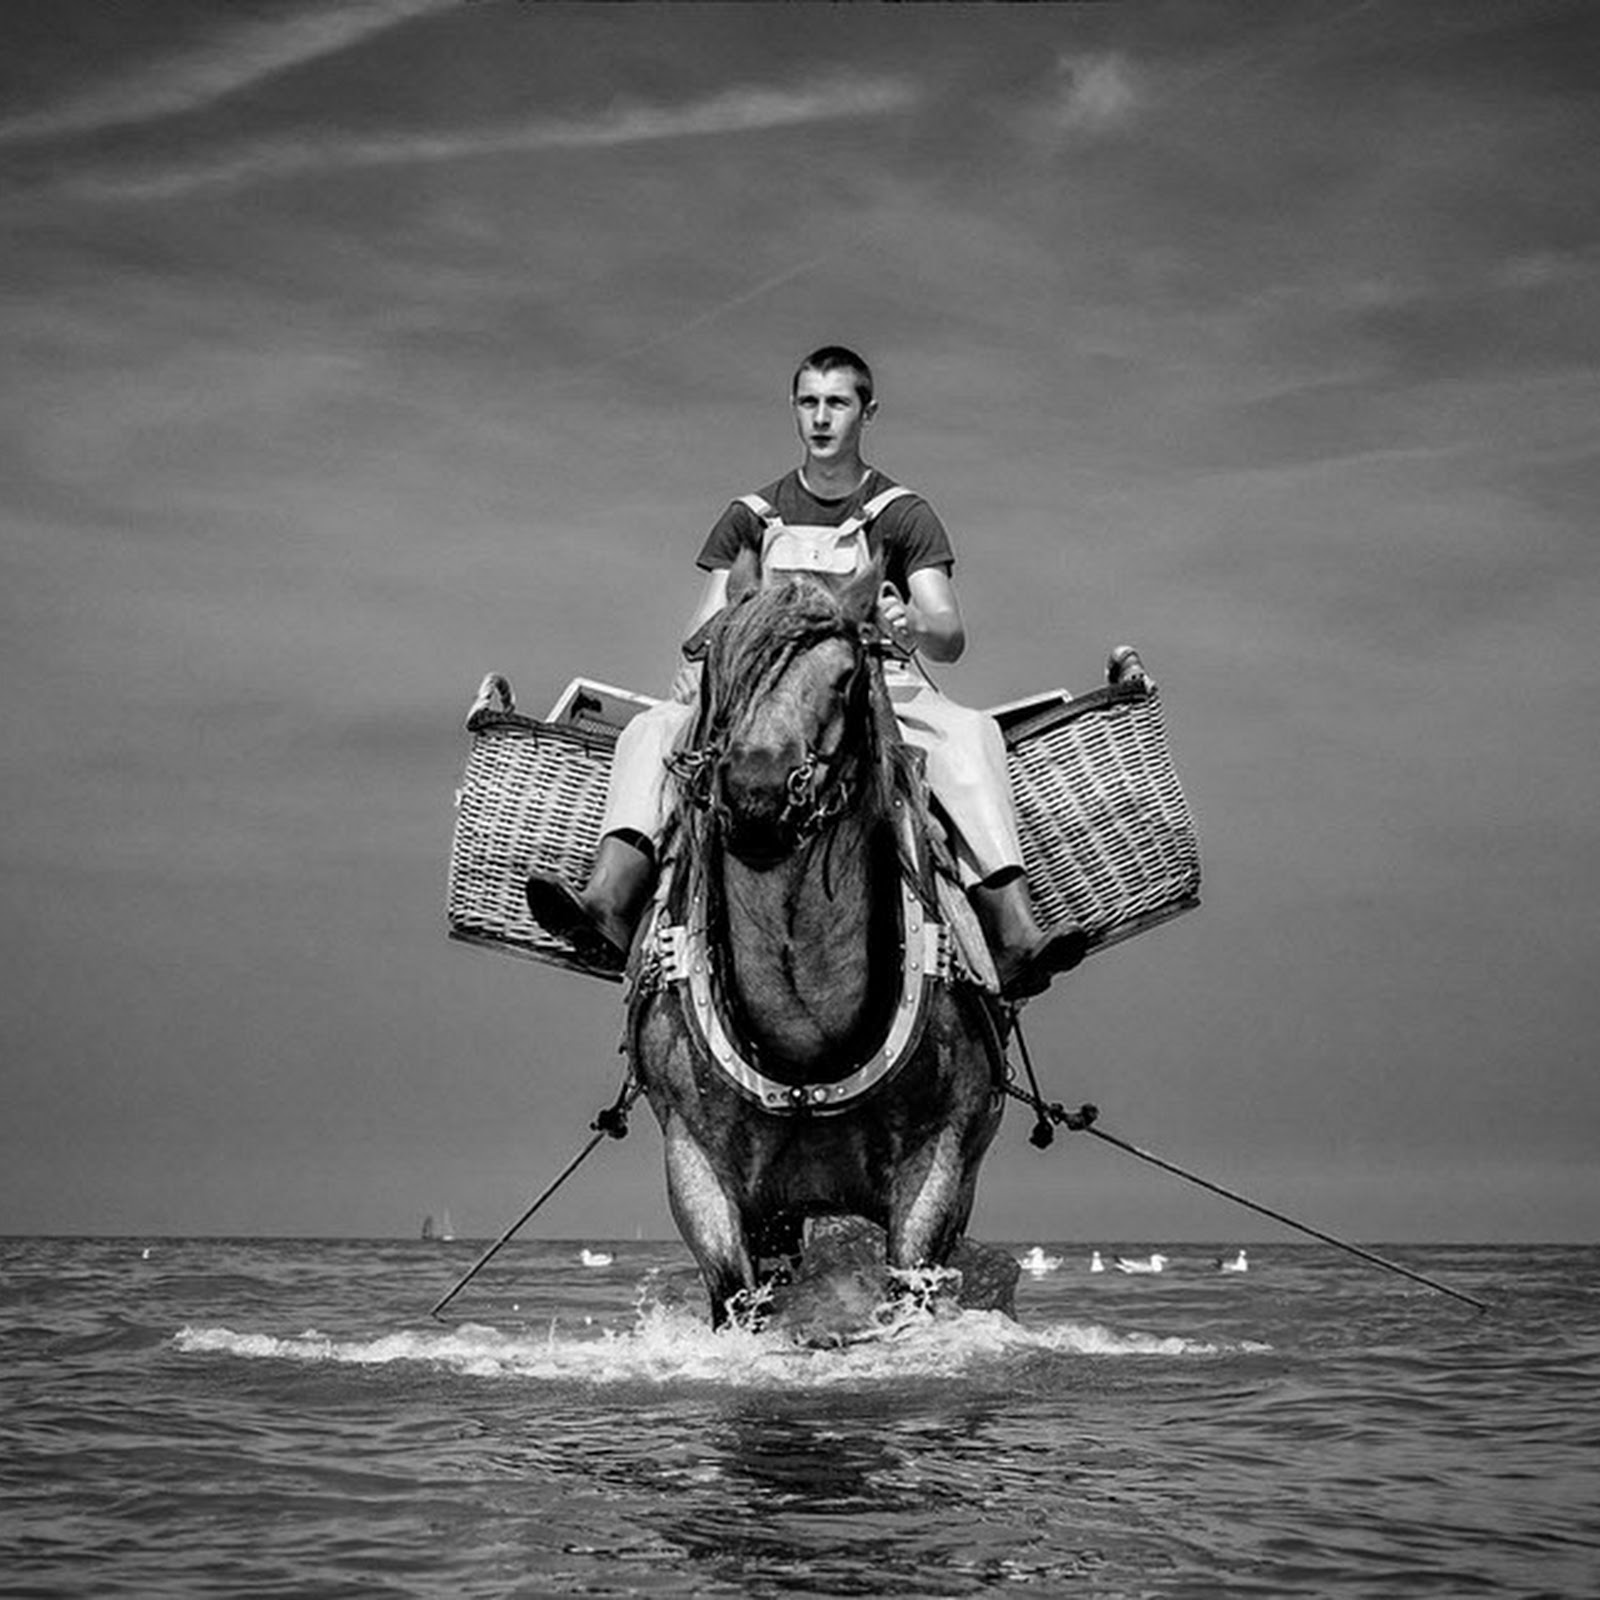 The Horseback Fishermen of Oostduinkerke